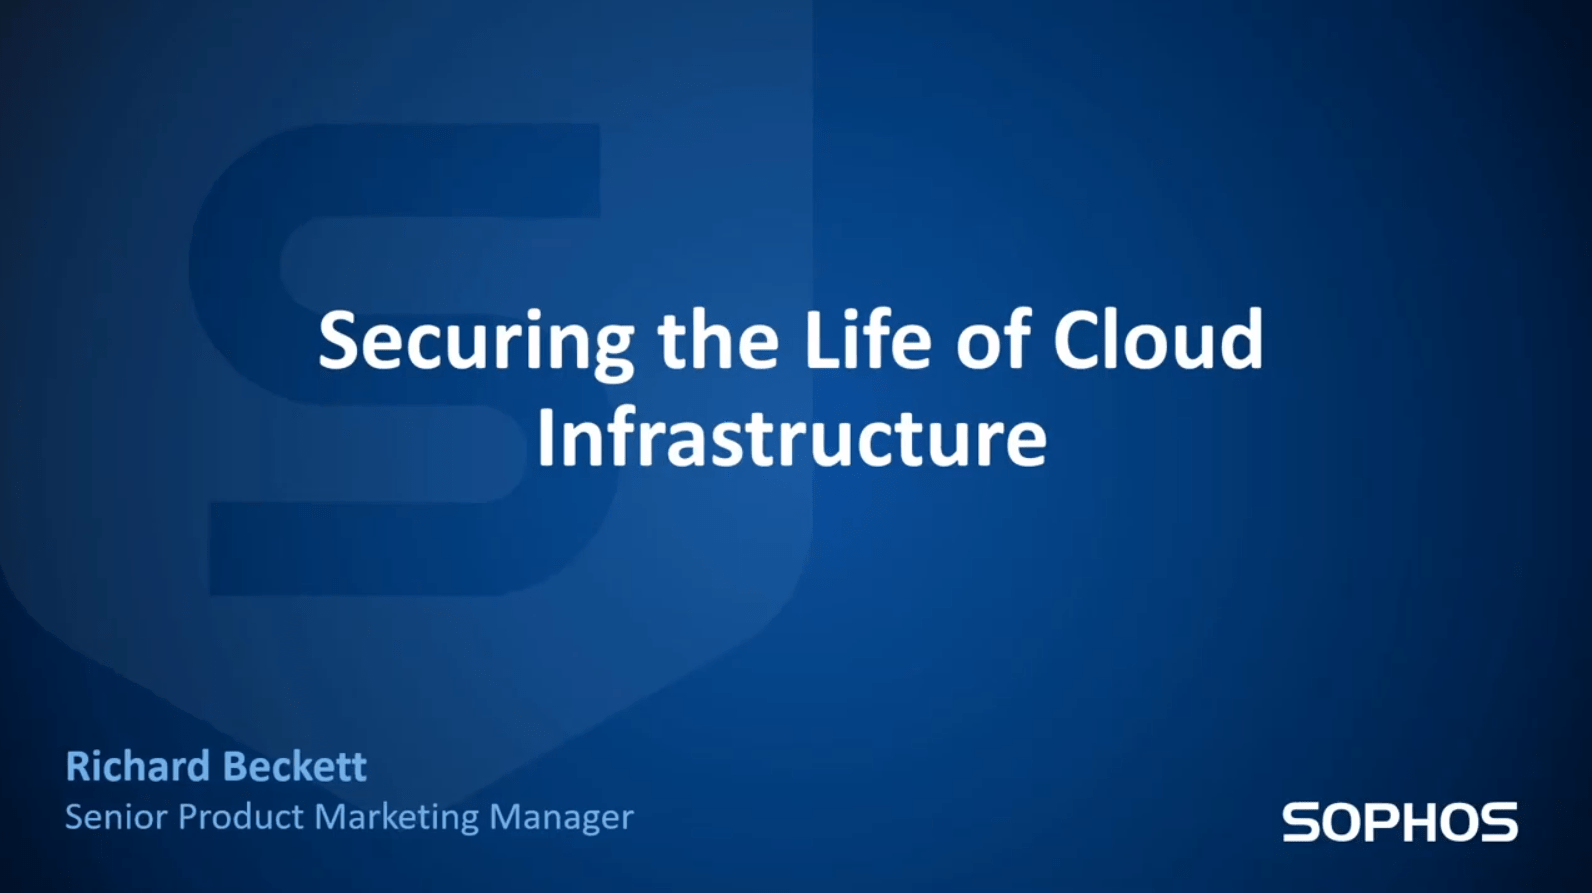 Securing the life of Cloud Infrastructure